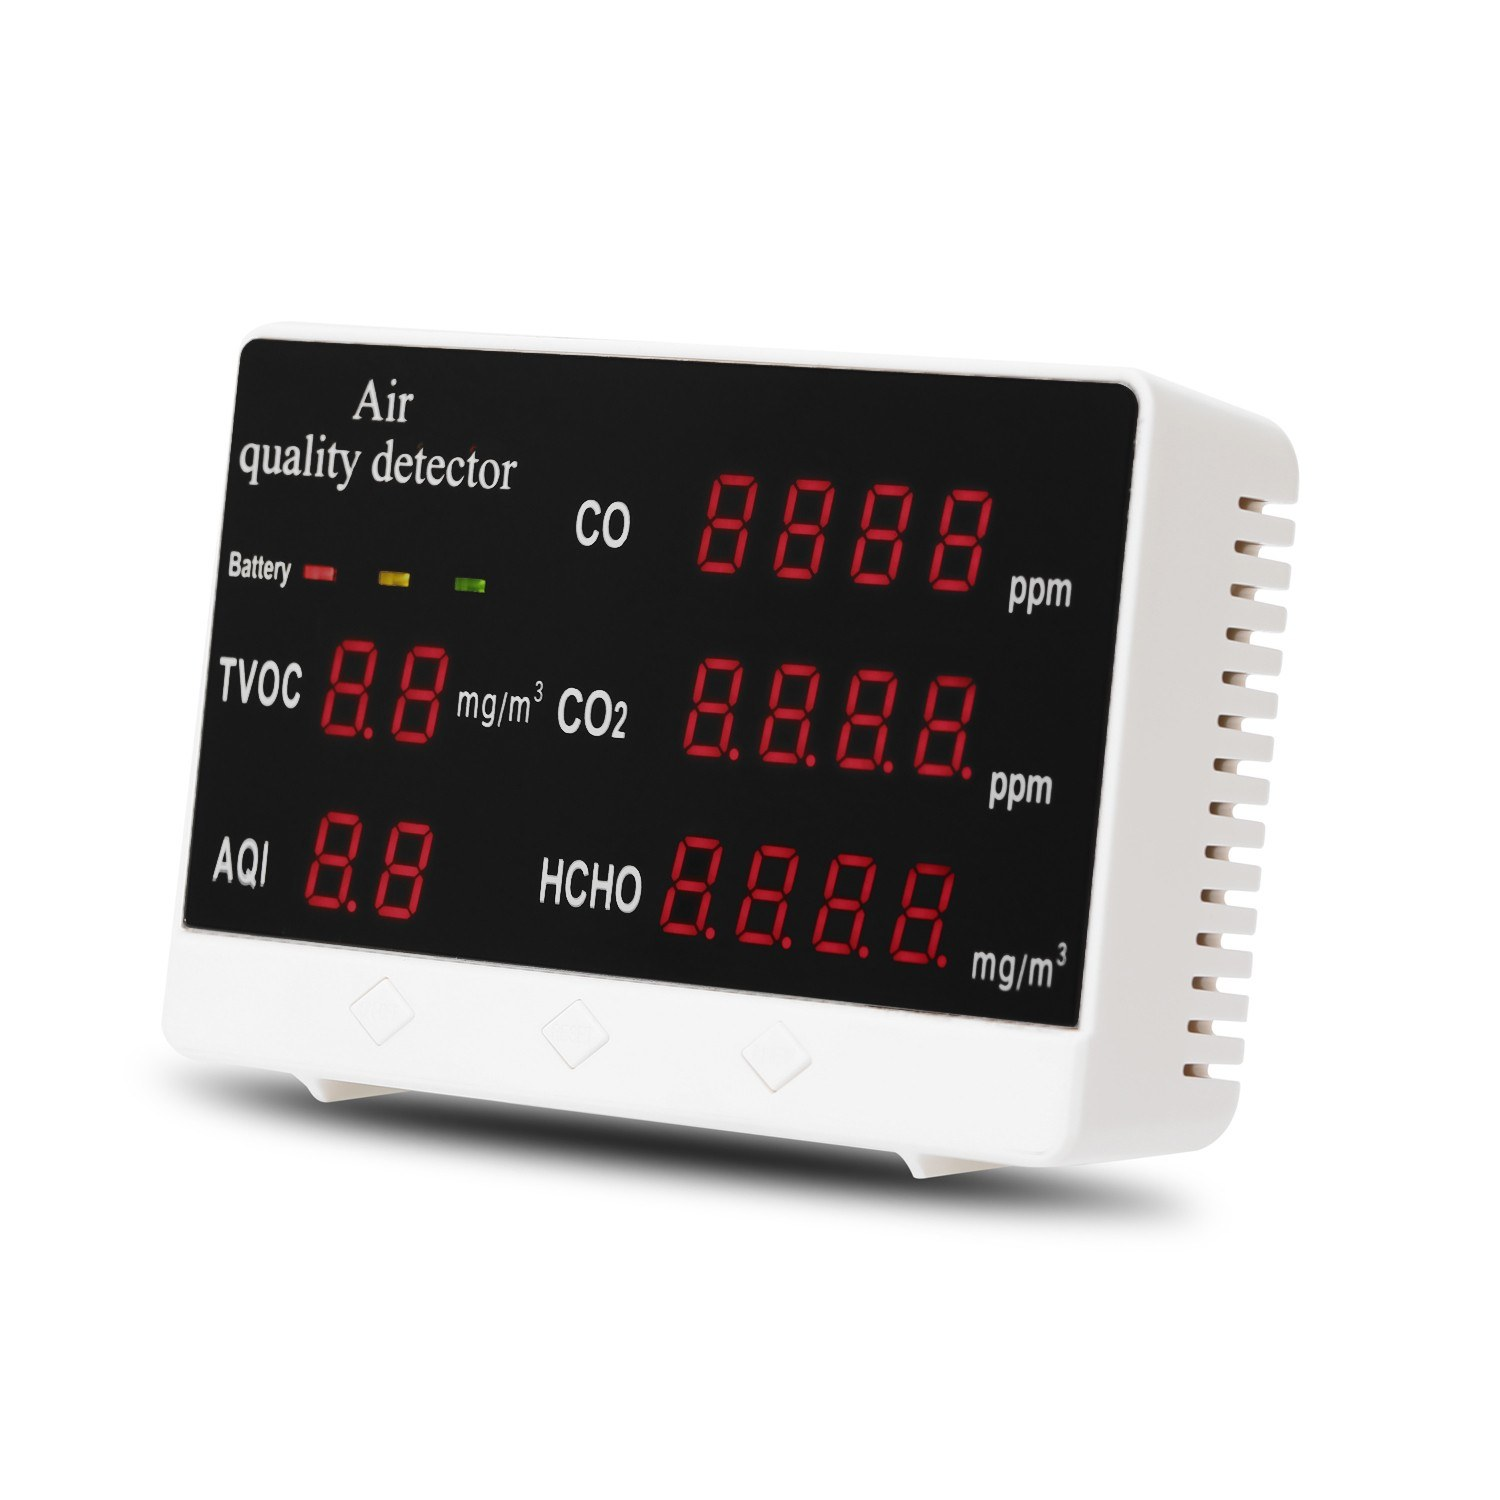 tomtop.com - 57% OFF Multifunctional Digital Display Air Quality Analyzer Monitor, Limited Offers $31.99